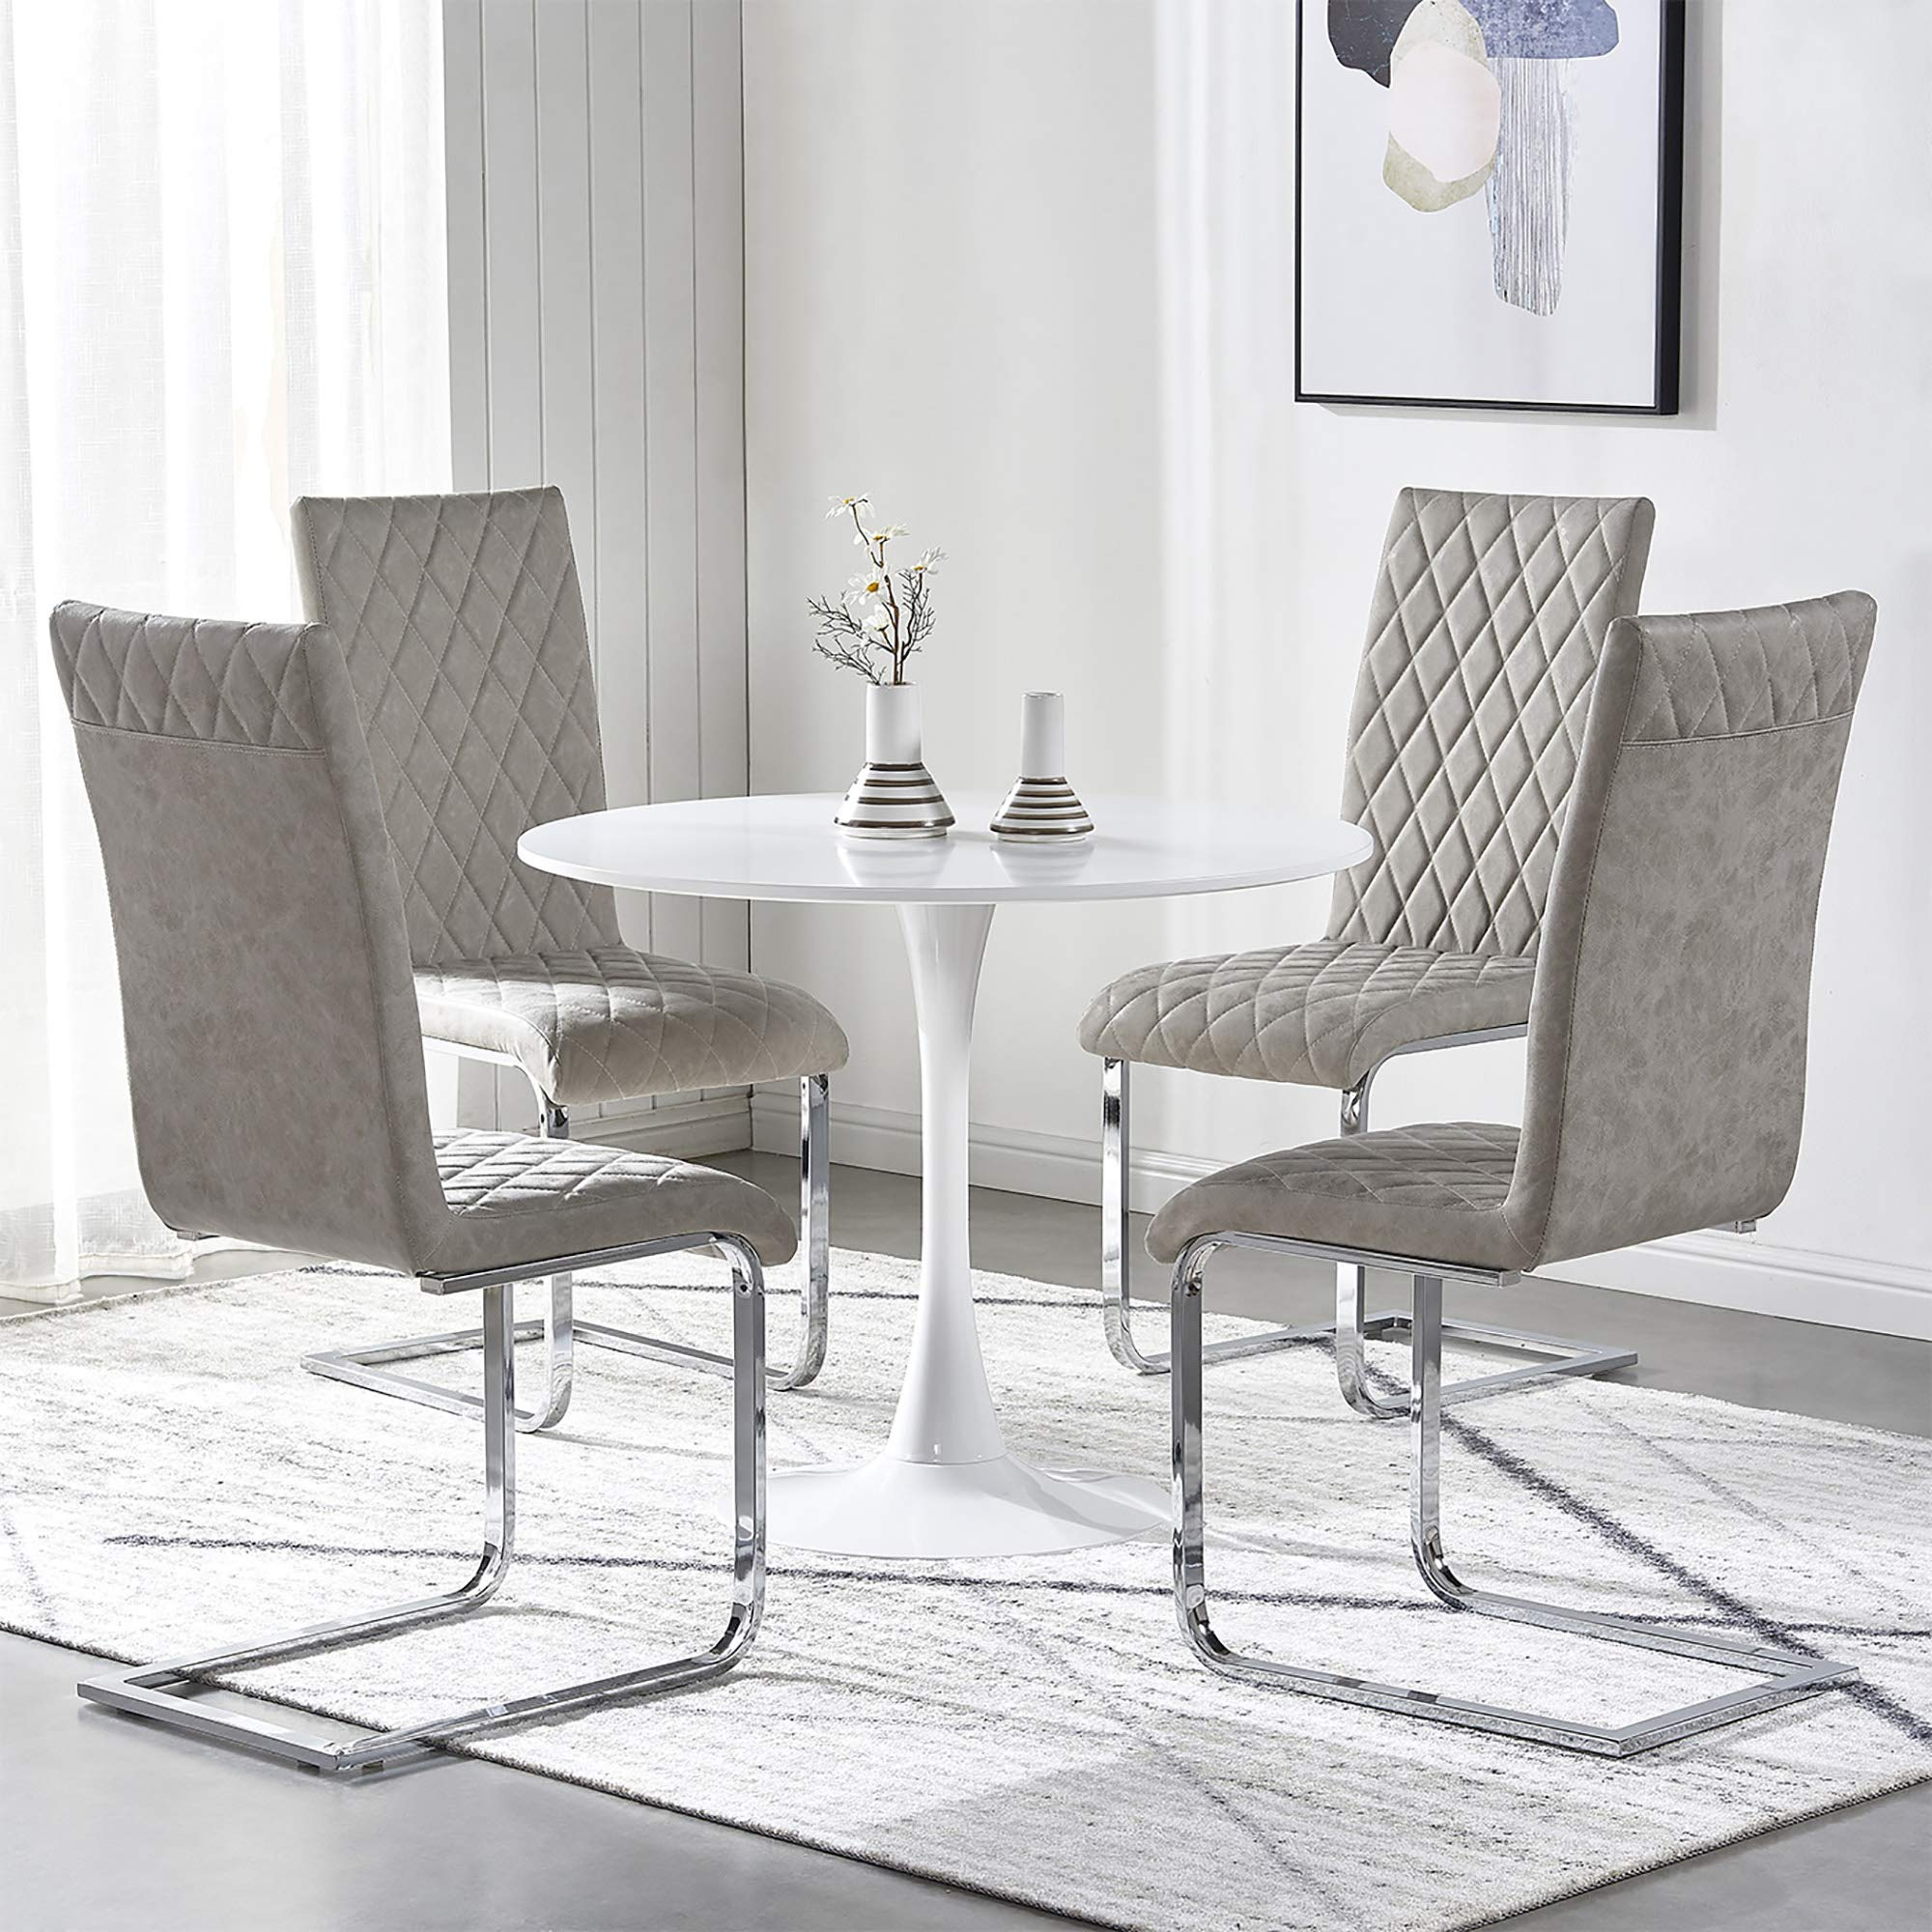 Gizza Small Round Dining Table And Chairs Set 4 White 90cm Diameter Mdf Wooden Top Metal Pedestal Light Grey Distressed Faux Leather Dining Chairs With Chrome Leg Space Saving For Kitchen Living Room Buy